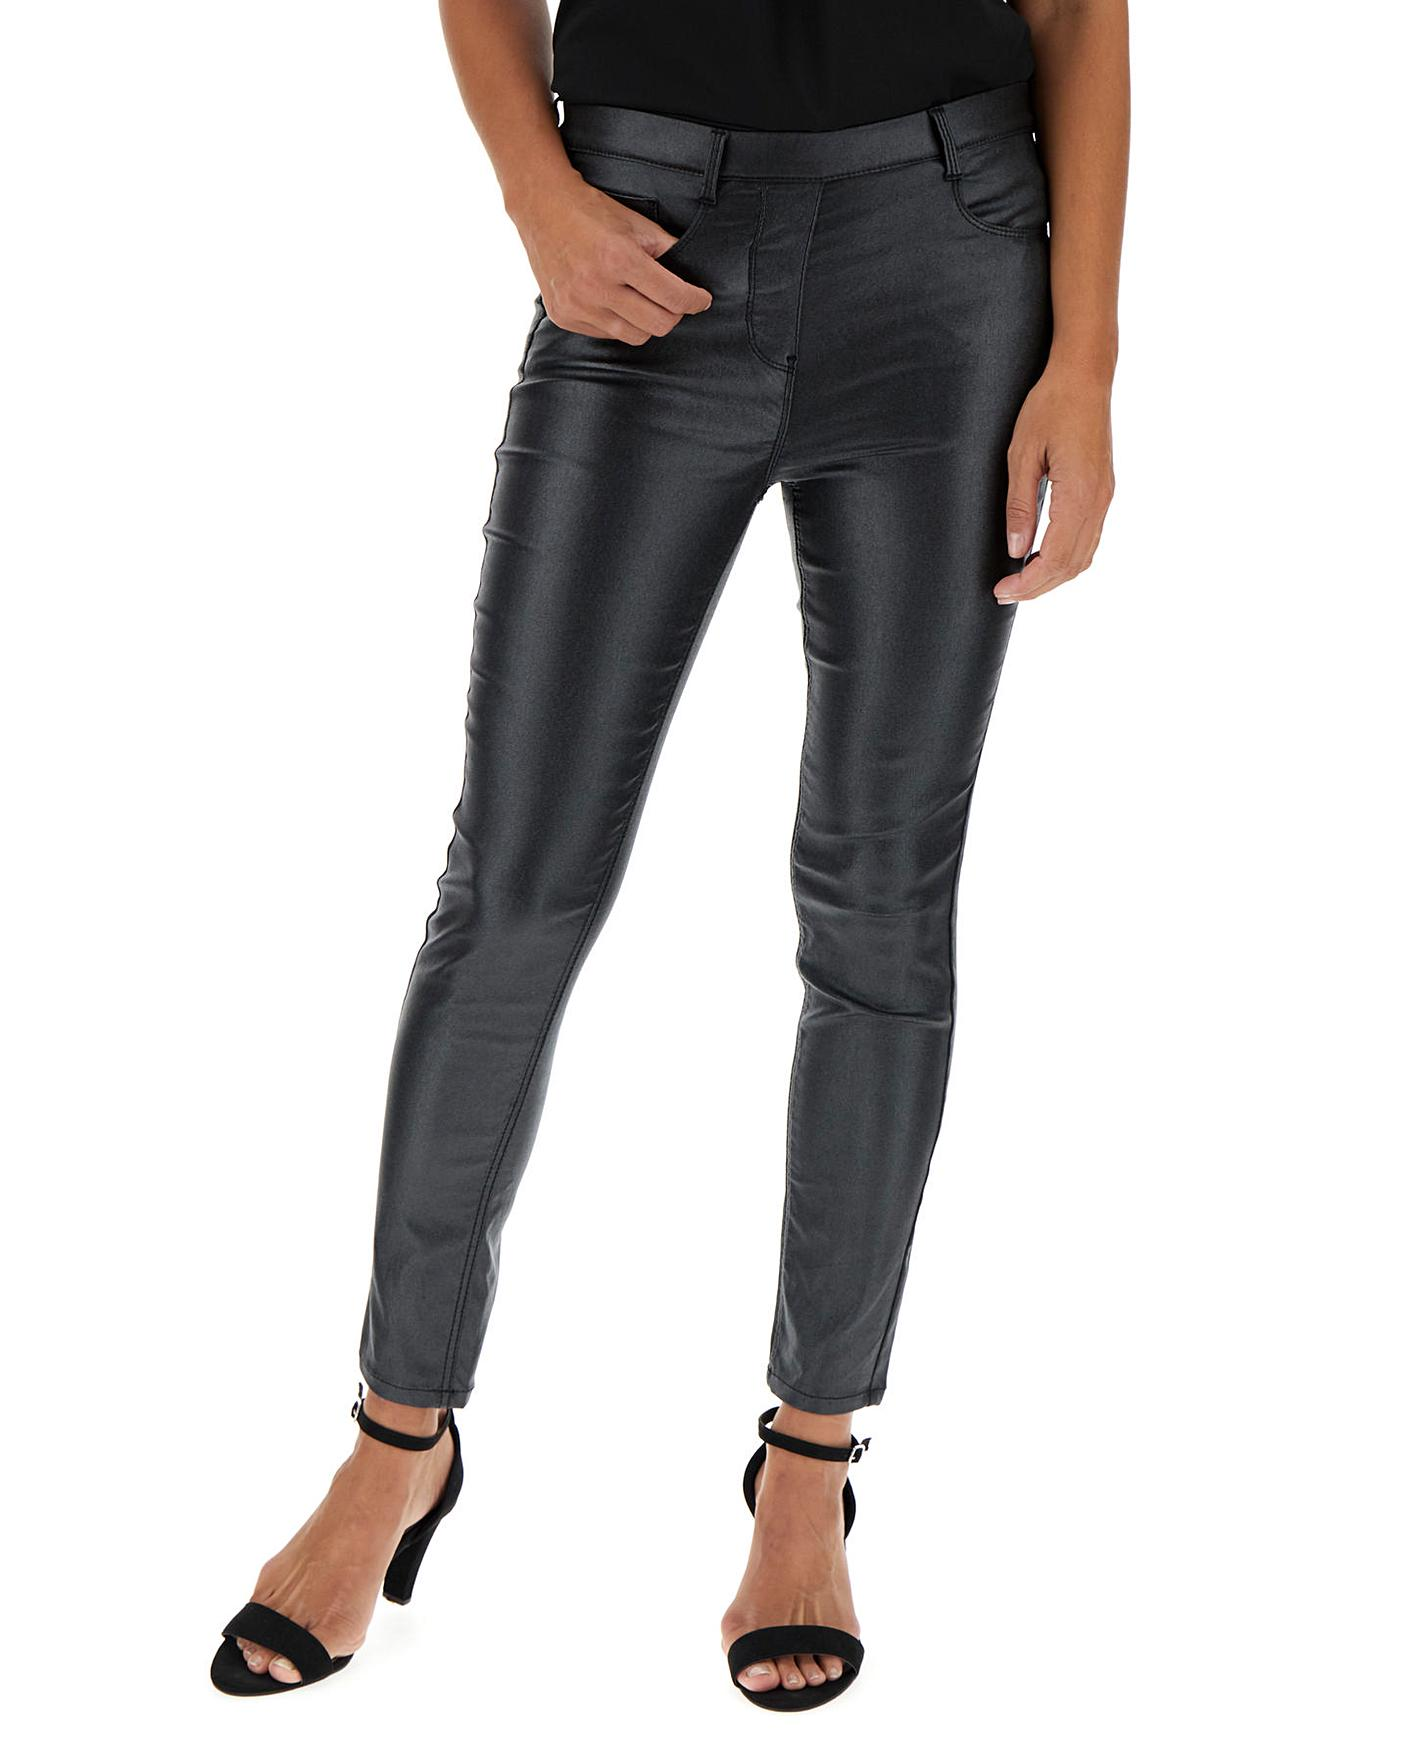 Black Glitter Pull On Jeggings